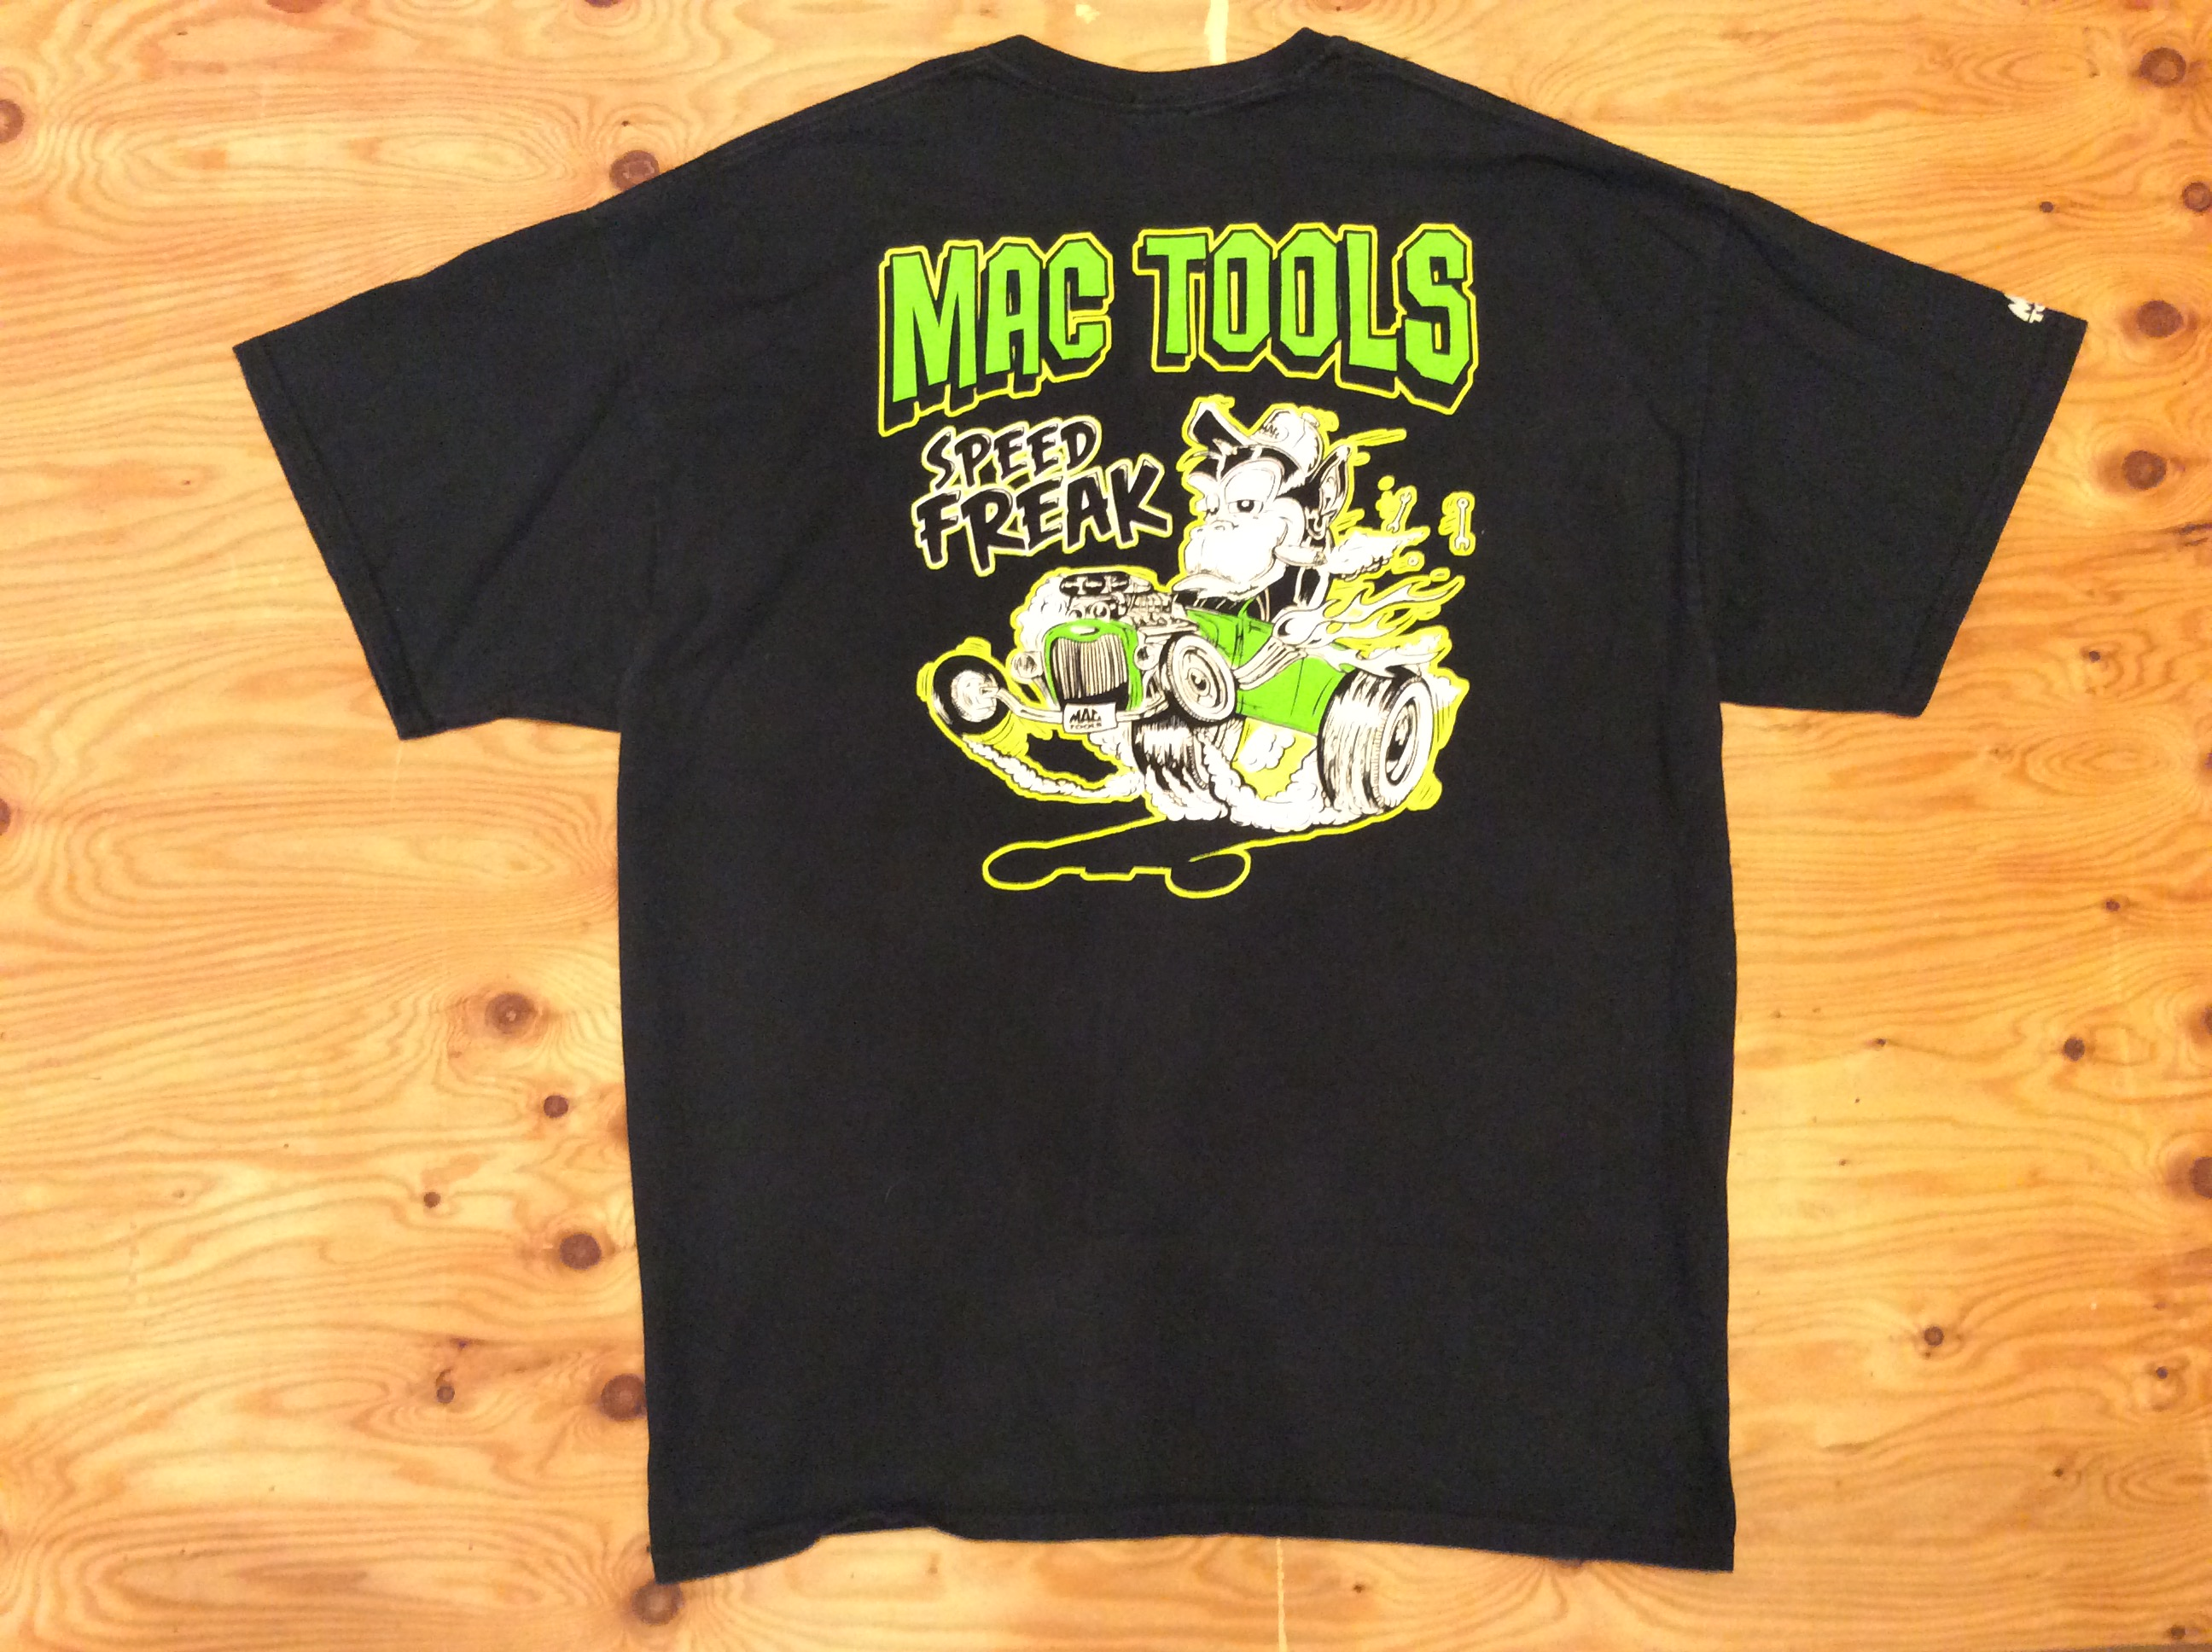 Mac Tools Speed Freak Graphic T Shirt / Black / 2XL / USED